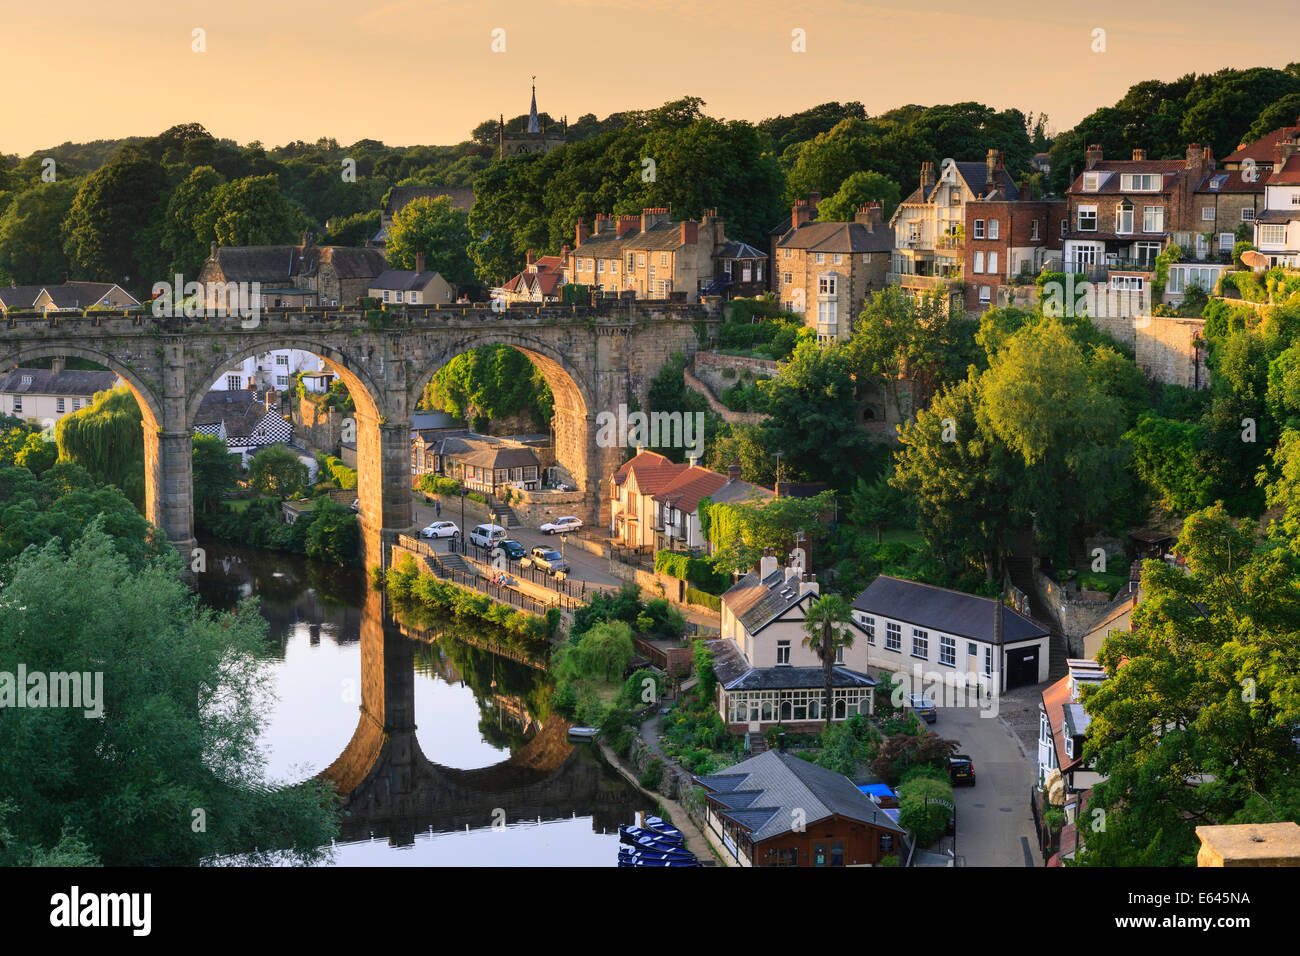 Viaduct and River Nidd at Knaresborough Harrogate North Yorkshire England Stock Photo